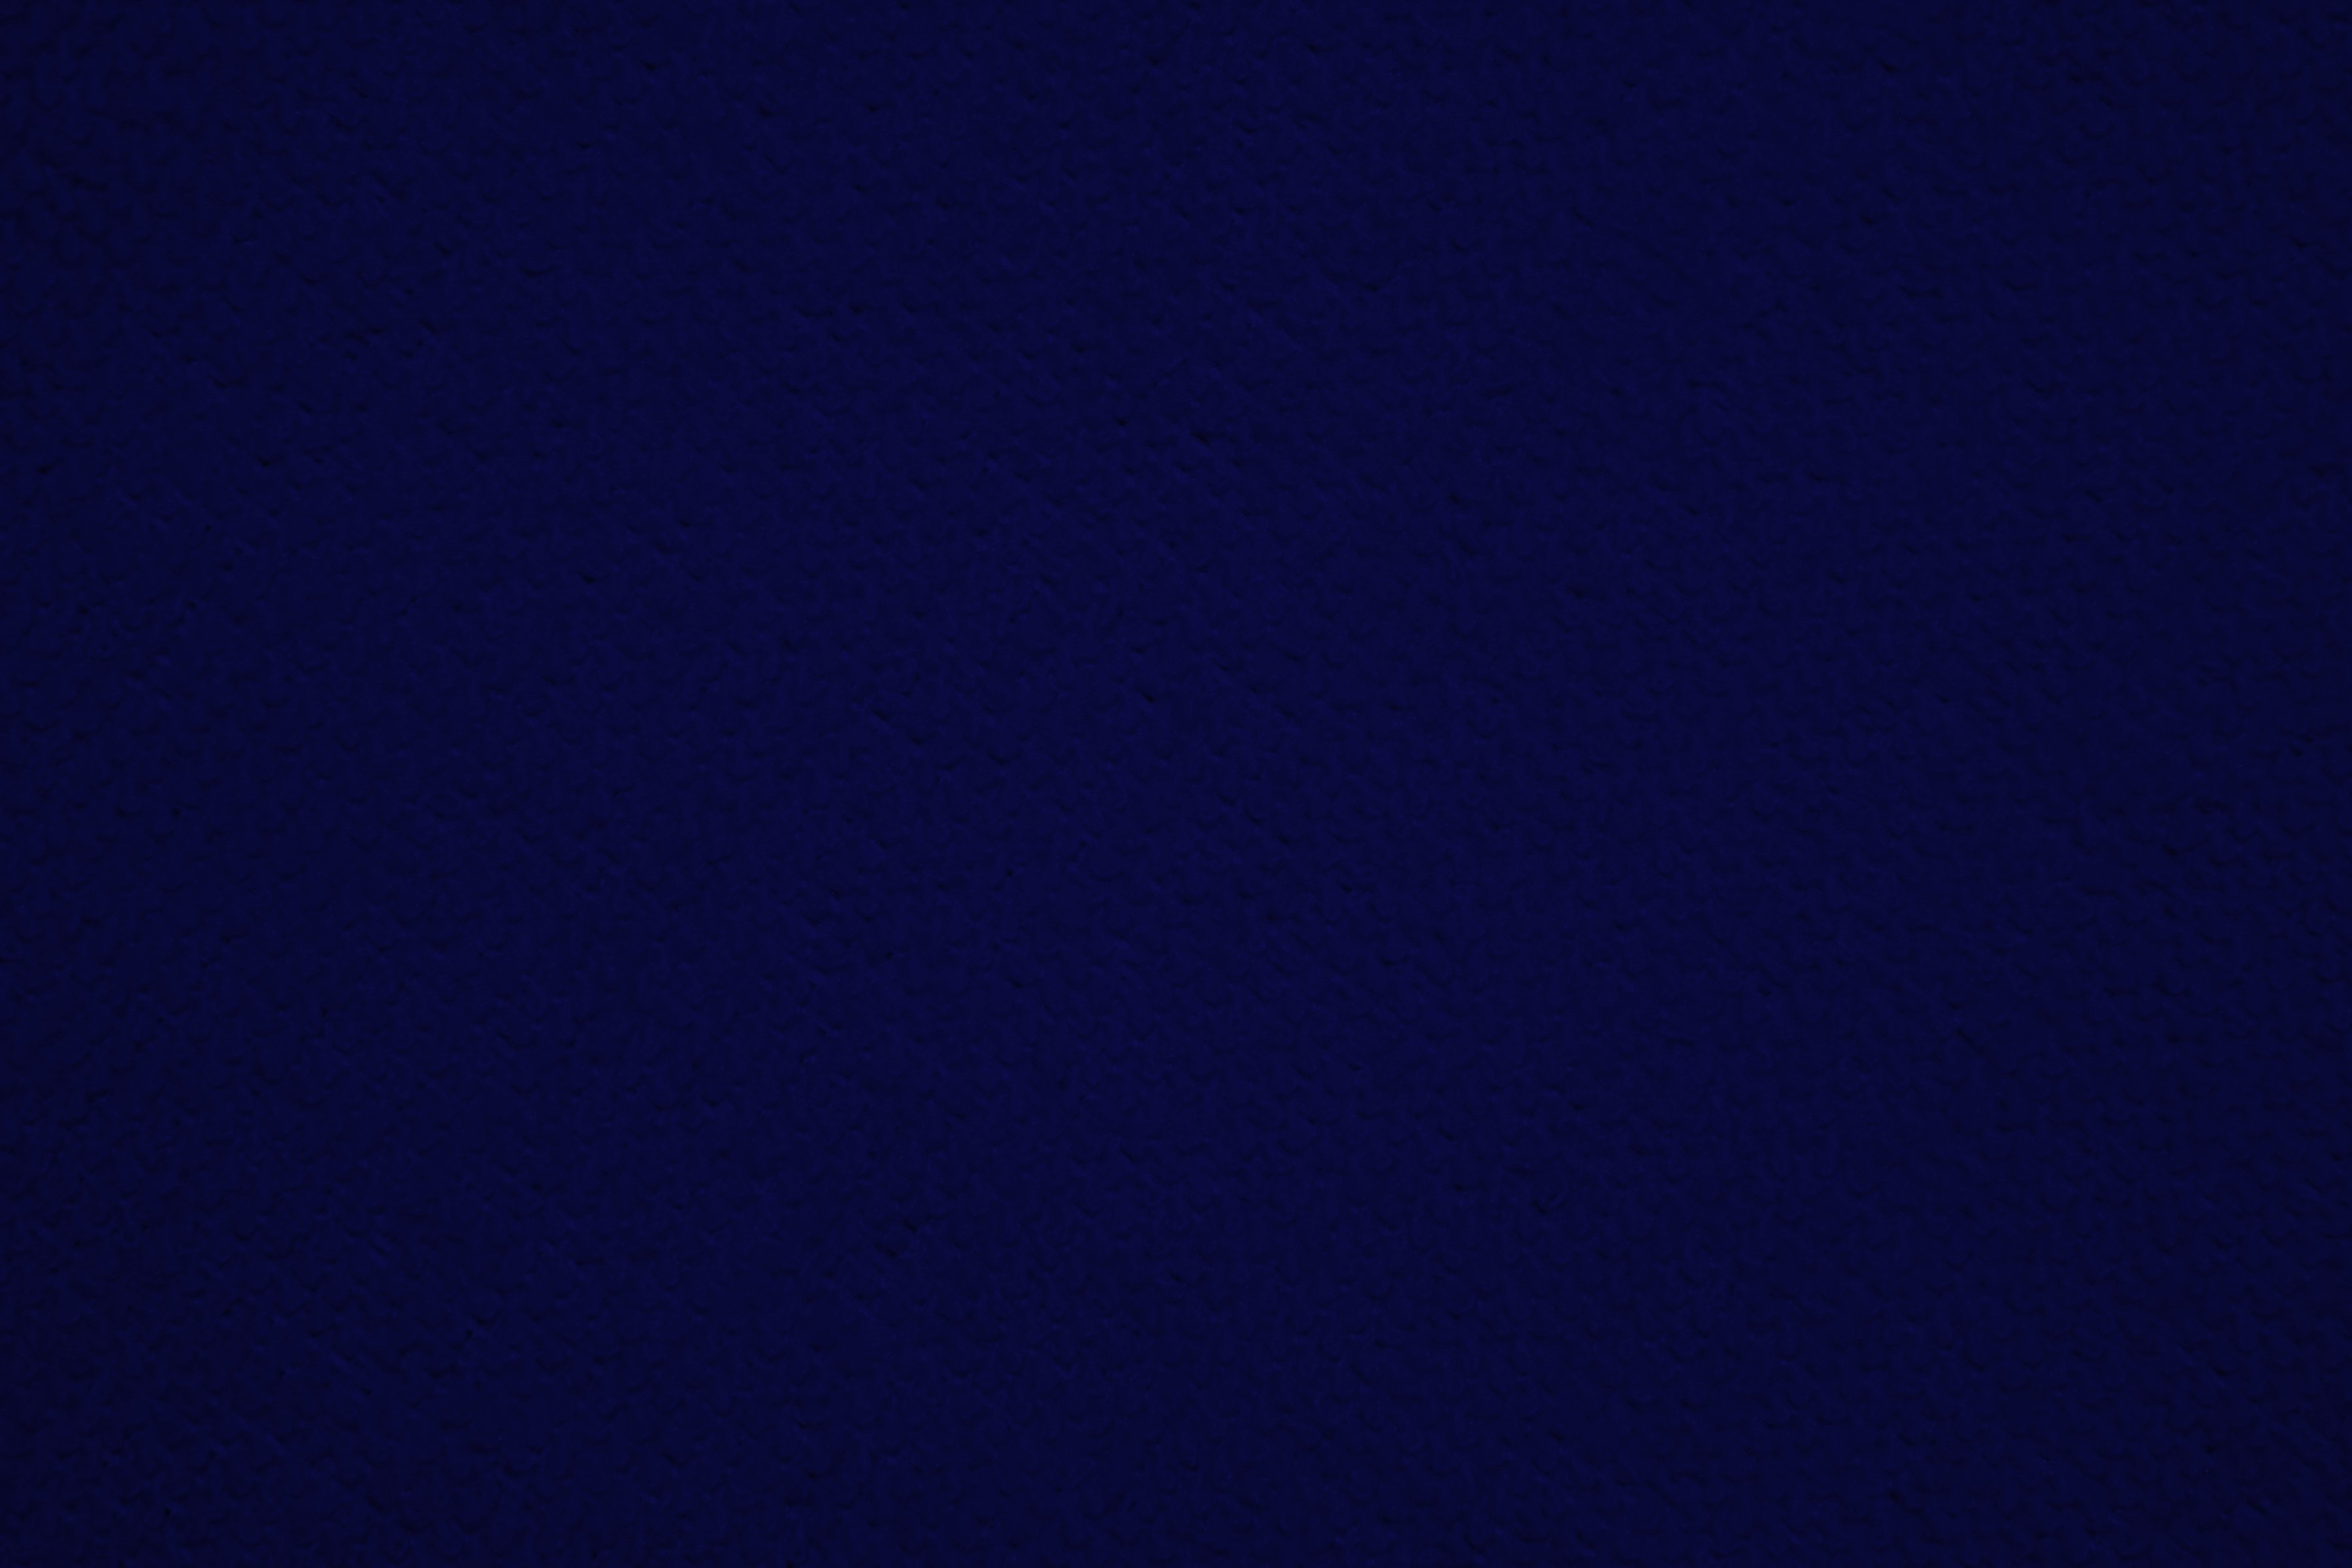 Blue Darkness Background Navy blue microfiber cloth fabric texture ...: imgarcade.com/1/blue-darkness-background